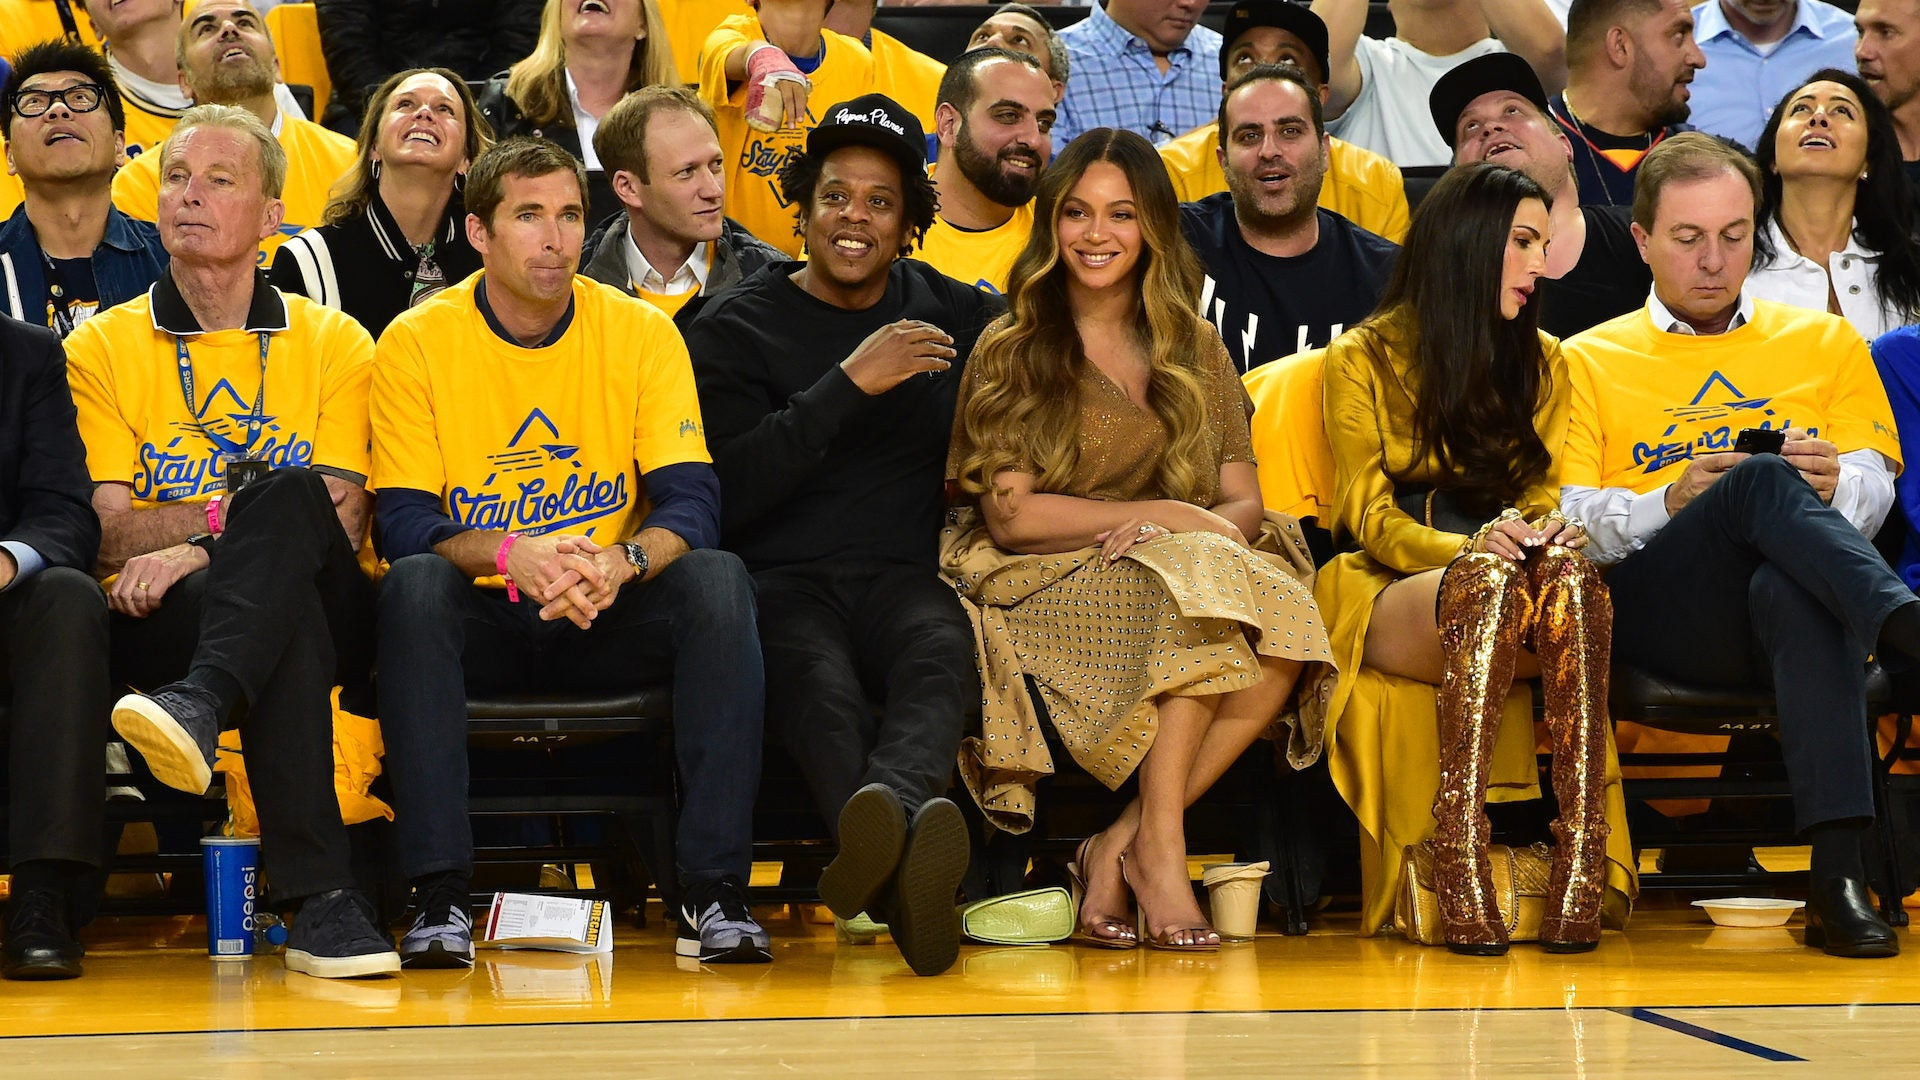 Love and Basketball: 15 Years Of Beyoncé and Jay-Z's Courtside Romance